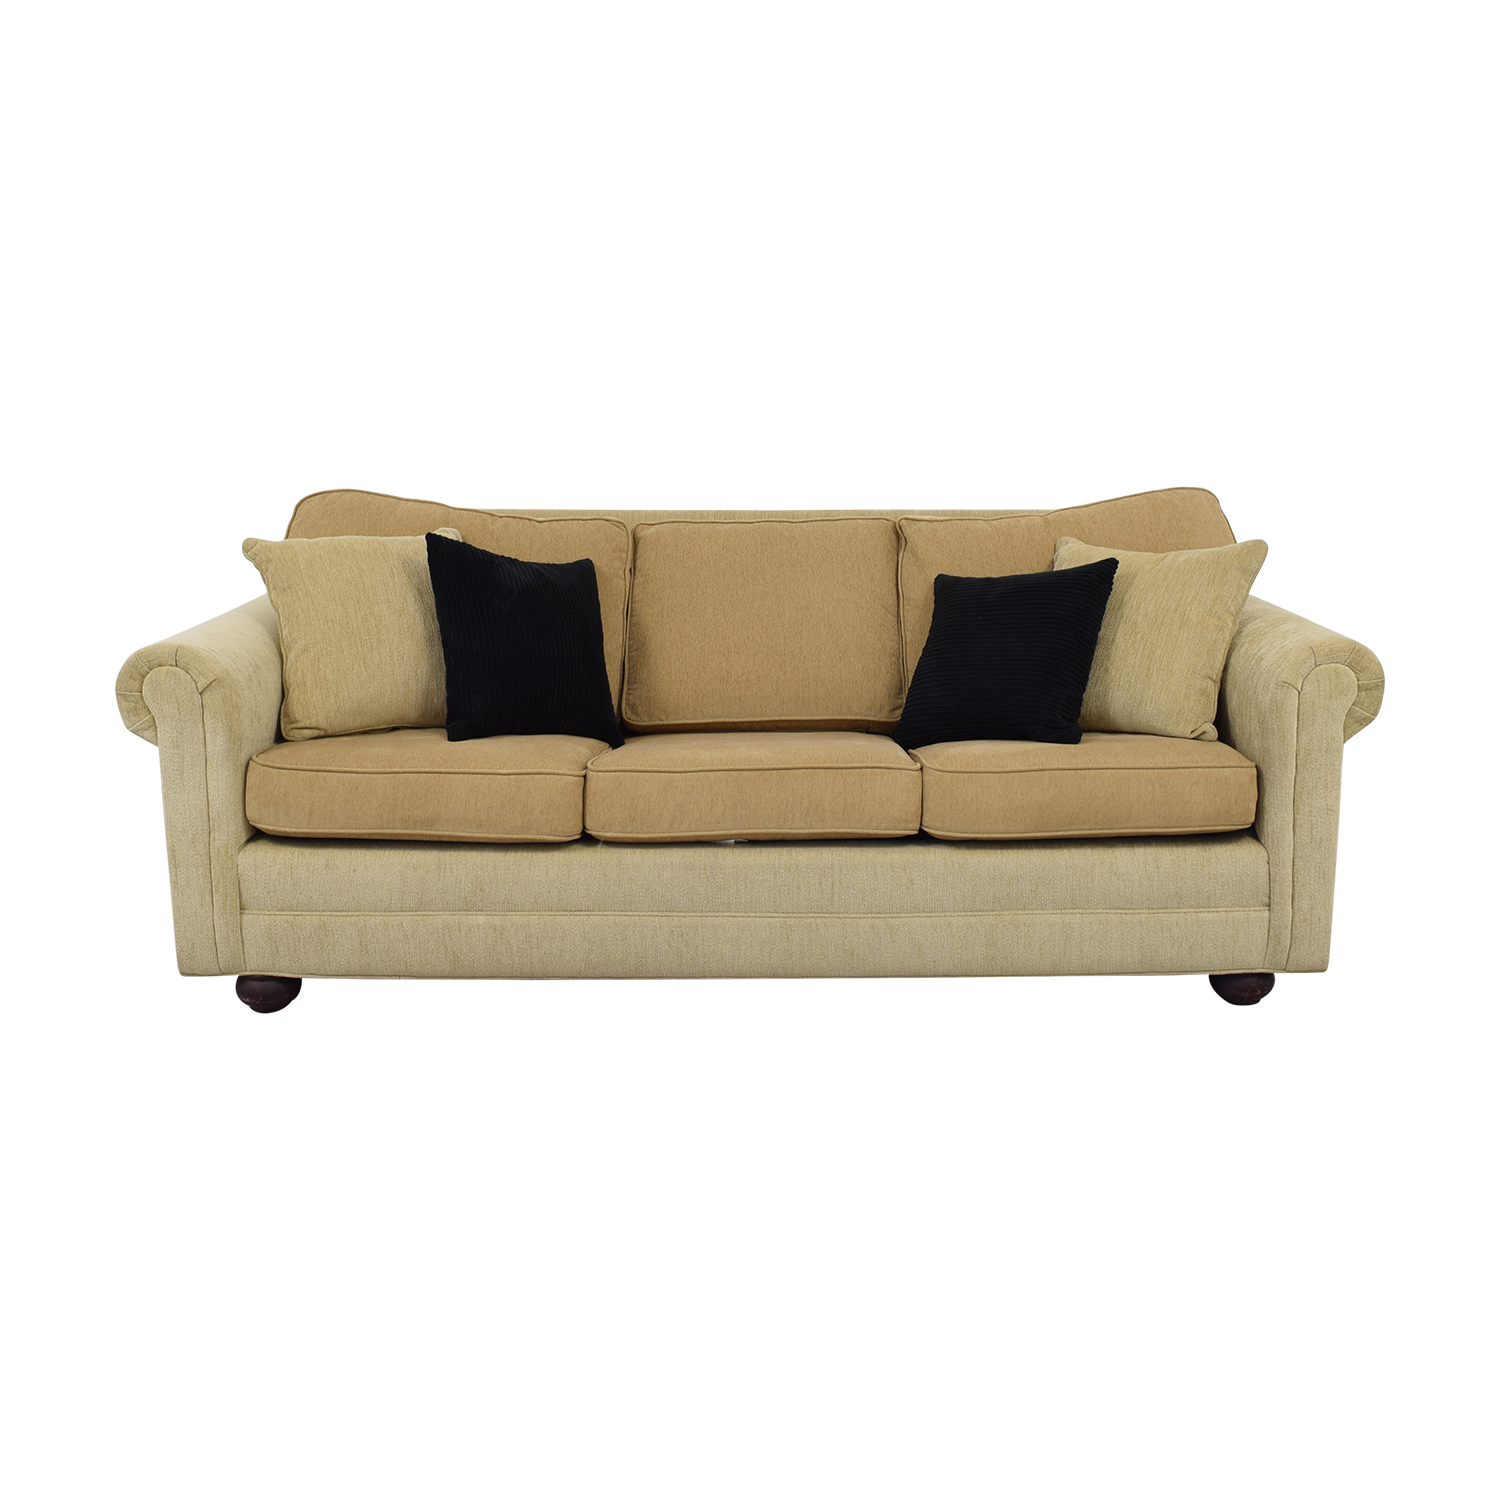 Restoration Hardware Restoration Hardware Beige Three-Cushion Couch with Queen Convertible nj